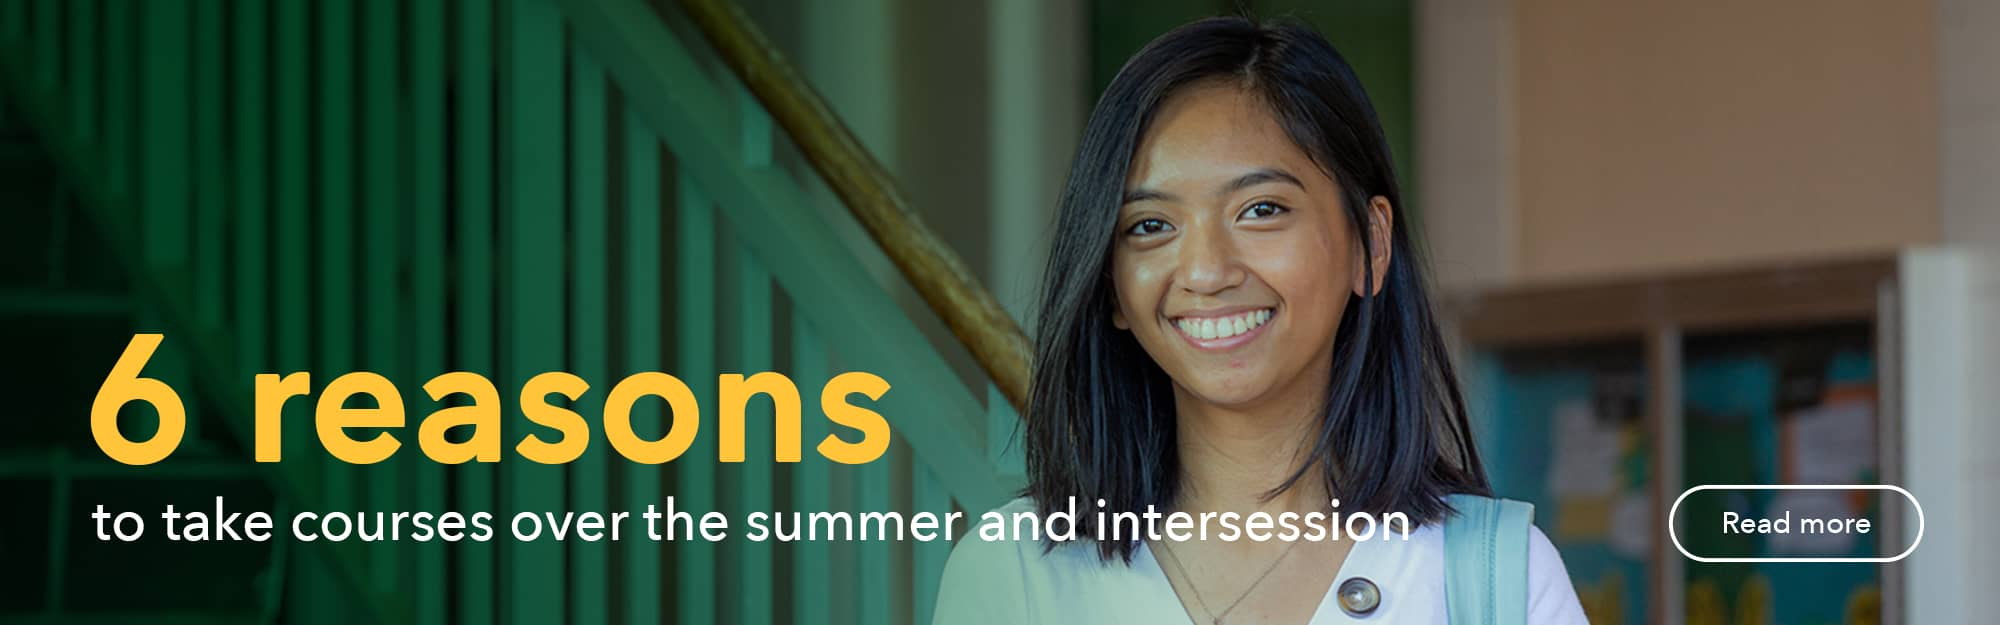 6 reasons to take courses over the summer and intersession